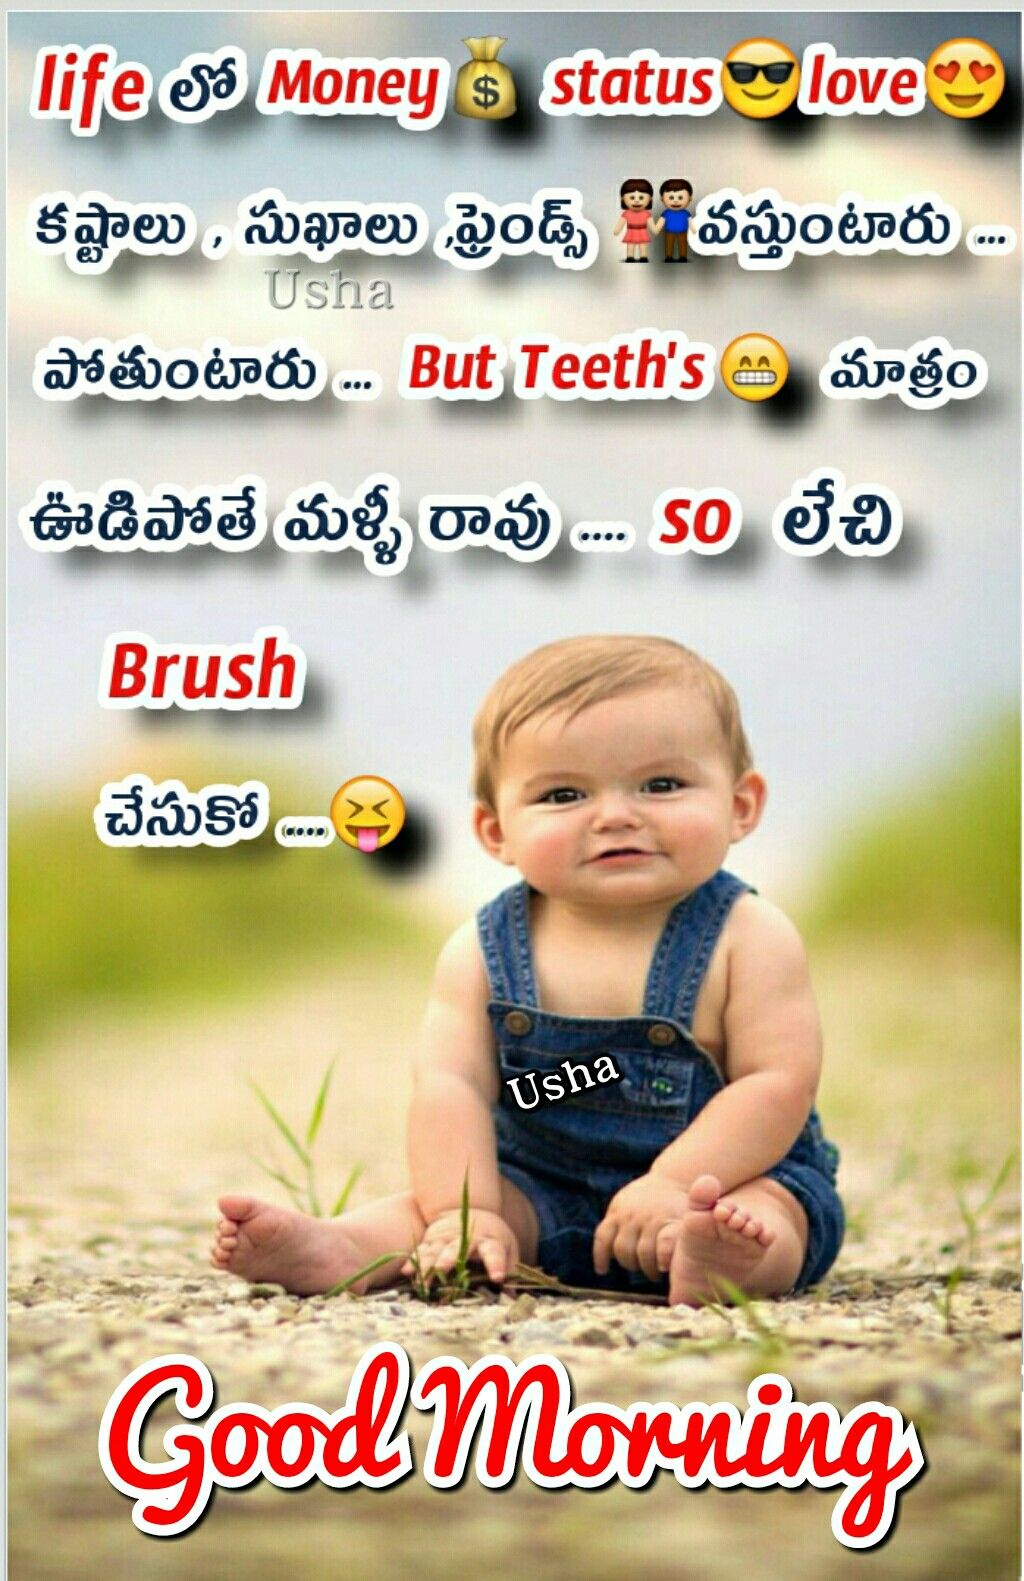 Pin By Usha Shaaa On My Own Pics Telugu Inspirational Quotes Tears Quotes Image Quotes